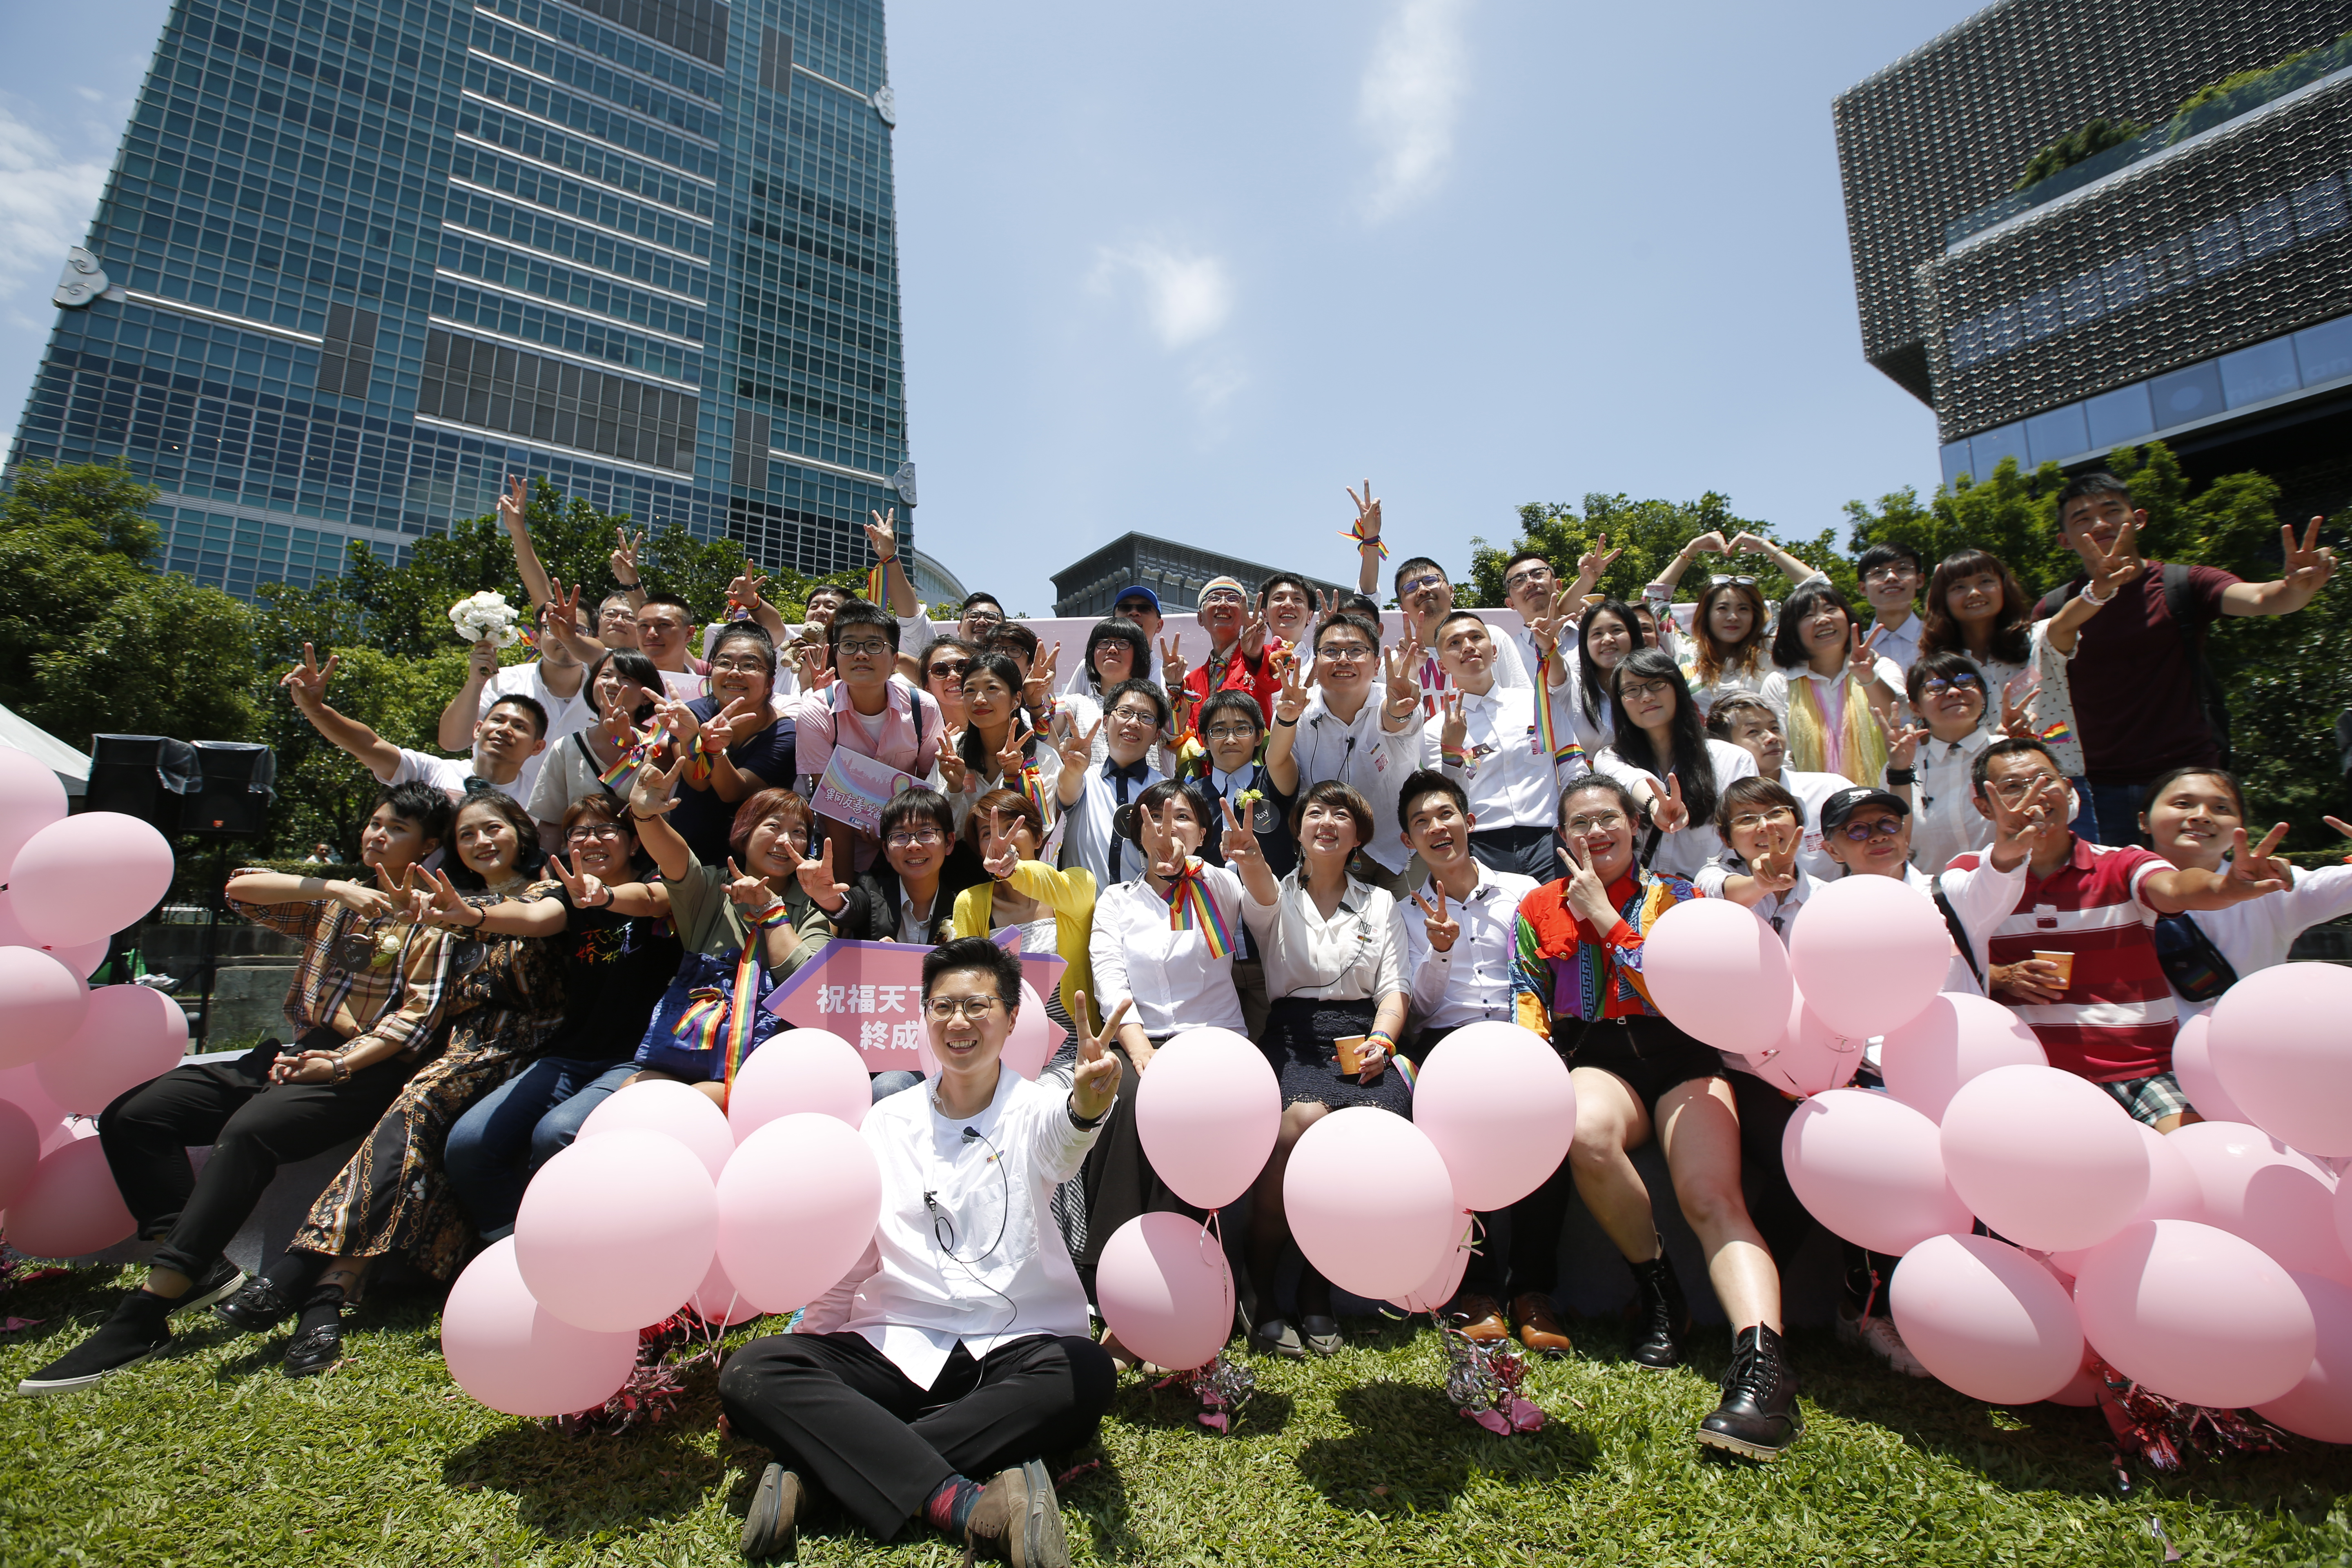 Attendees pose for photographs during a pro-same-sex marriage party organized by the Taipei City government and Marriage Equality Coalition Taiwan in Taipei on Friday. (Ashley Pon/Bloomberg News)